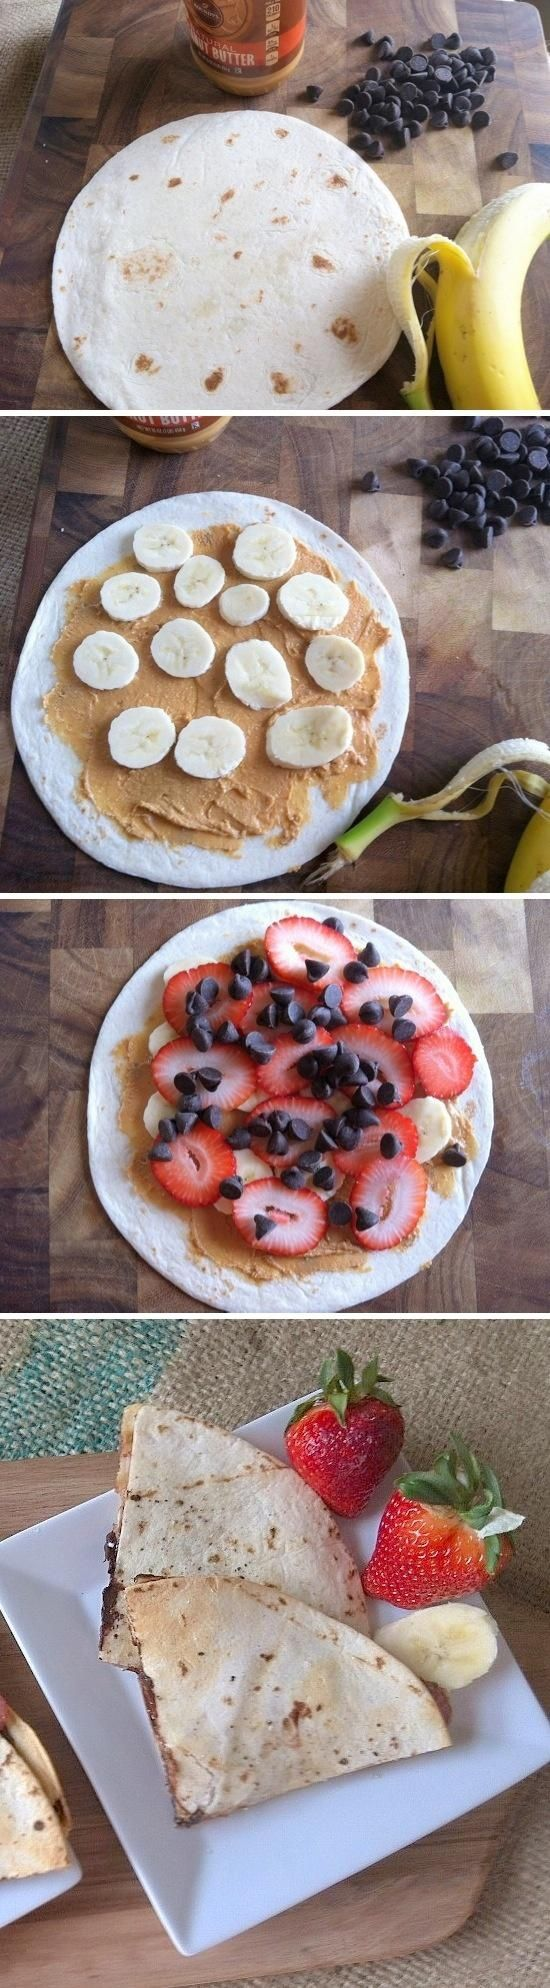 Strawberry, Banana, Chocolate, Peanut Butter Breakfast Quesadillas Sans the Bananas for me